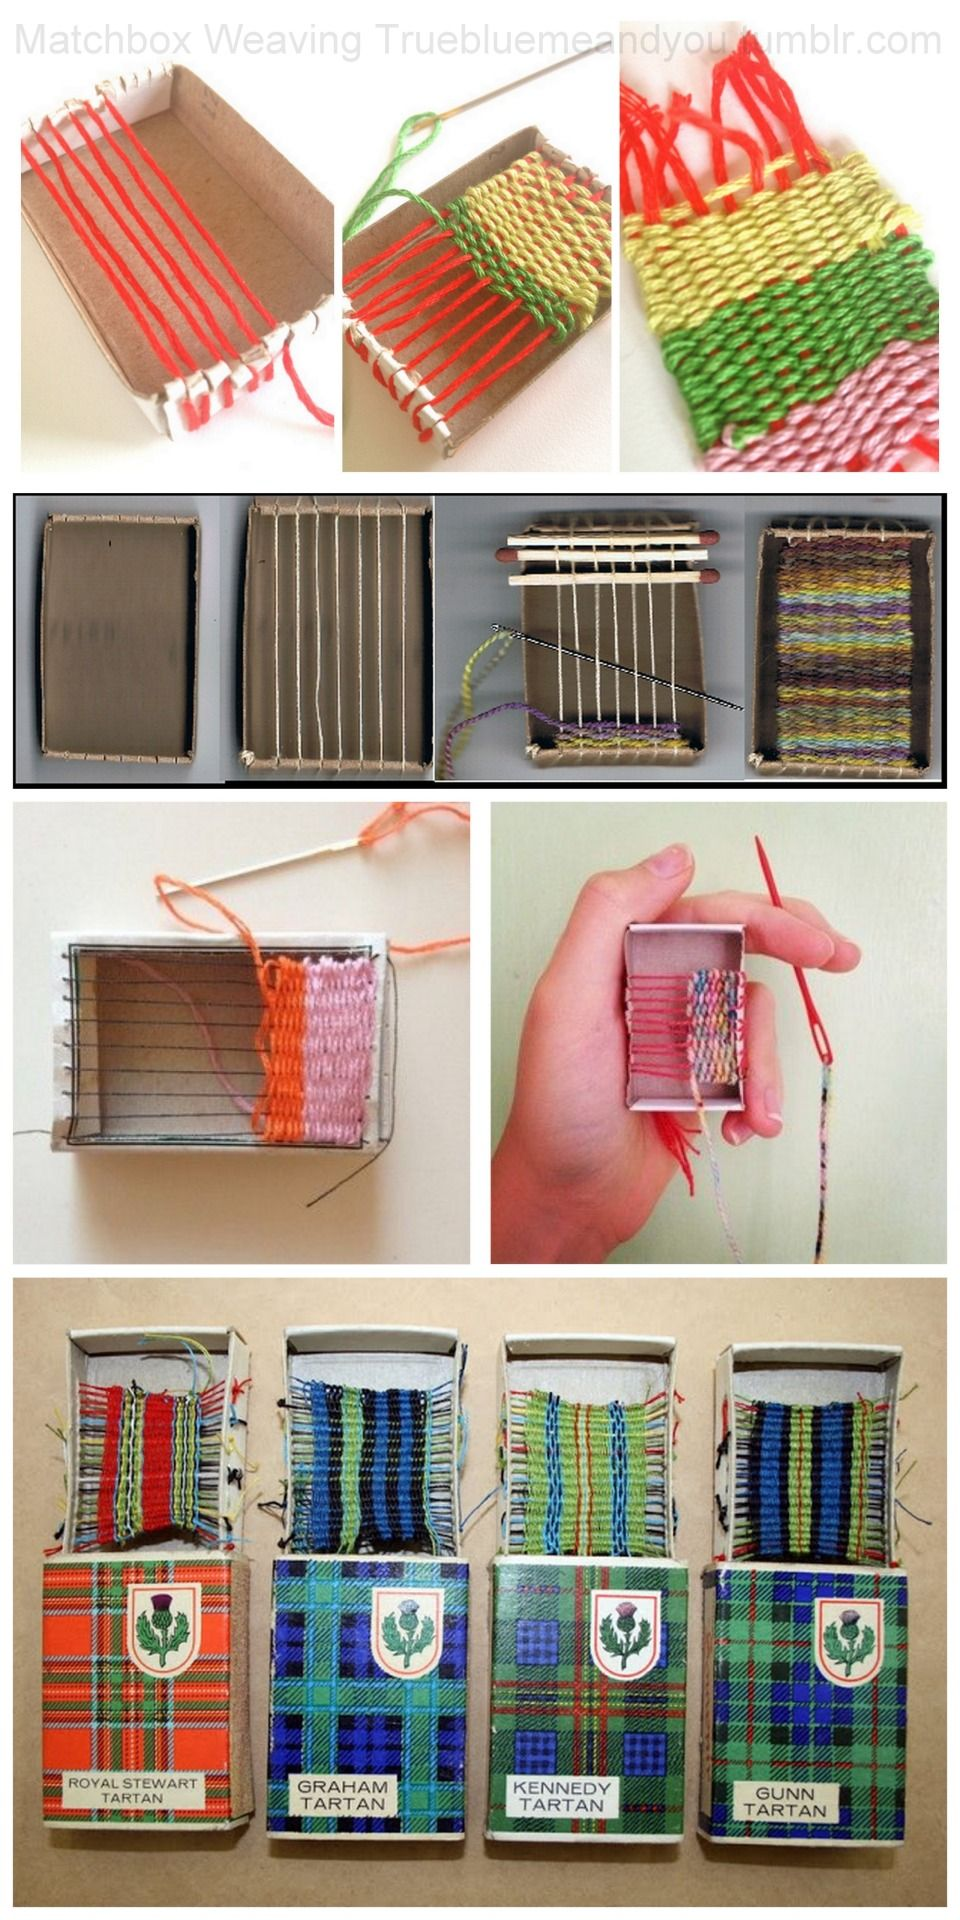 Roundup Of 5 Matchbox Weaving Tutorials And Inspiration From Top To Bottom Matchbox Weaving By Margaret Muirhead F Matchbox Crafts Tapestry Weaving Weaving